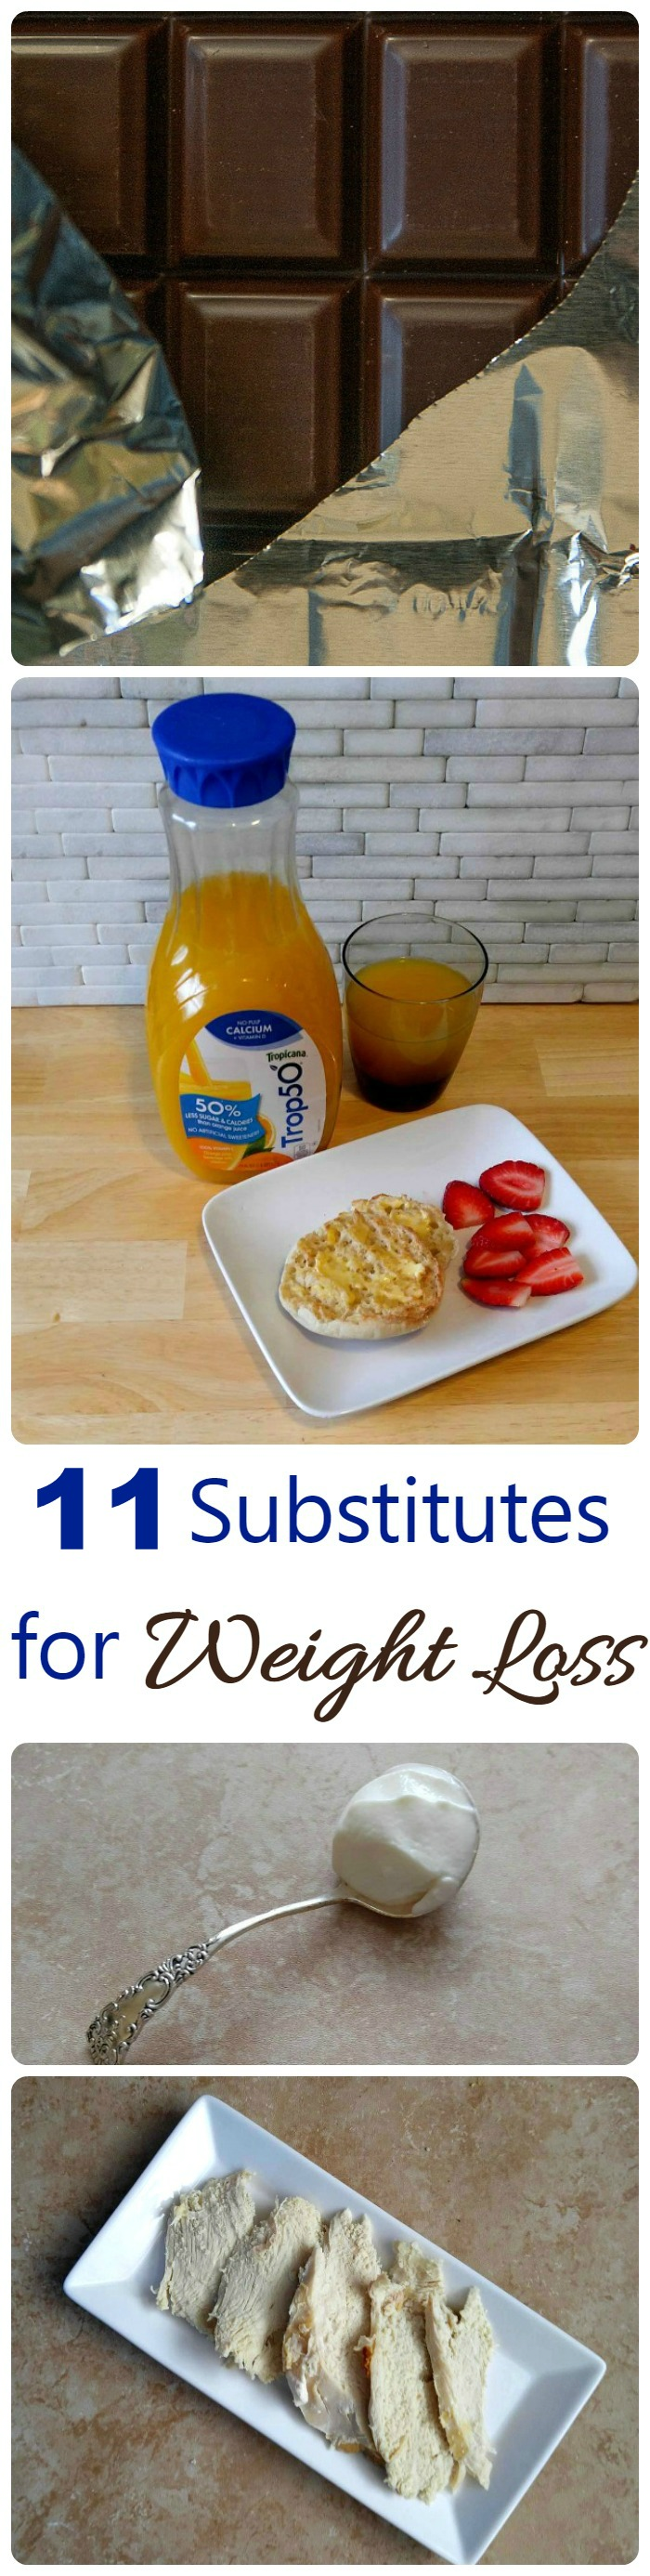 There are lots of small changes that you can make to add up to big losses for weight loss. These 11 substitutes will help lose weight and gain better health. #Trop50FreshStart #ad